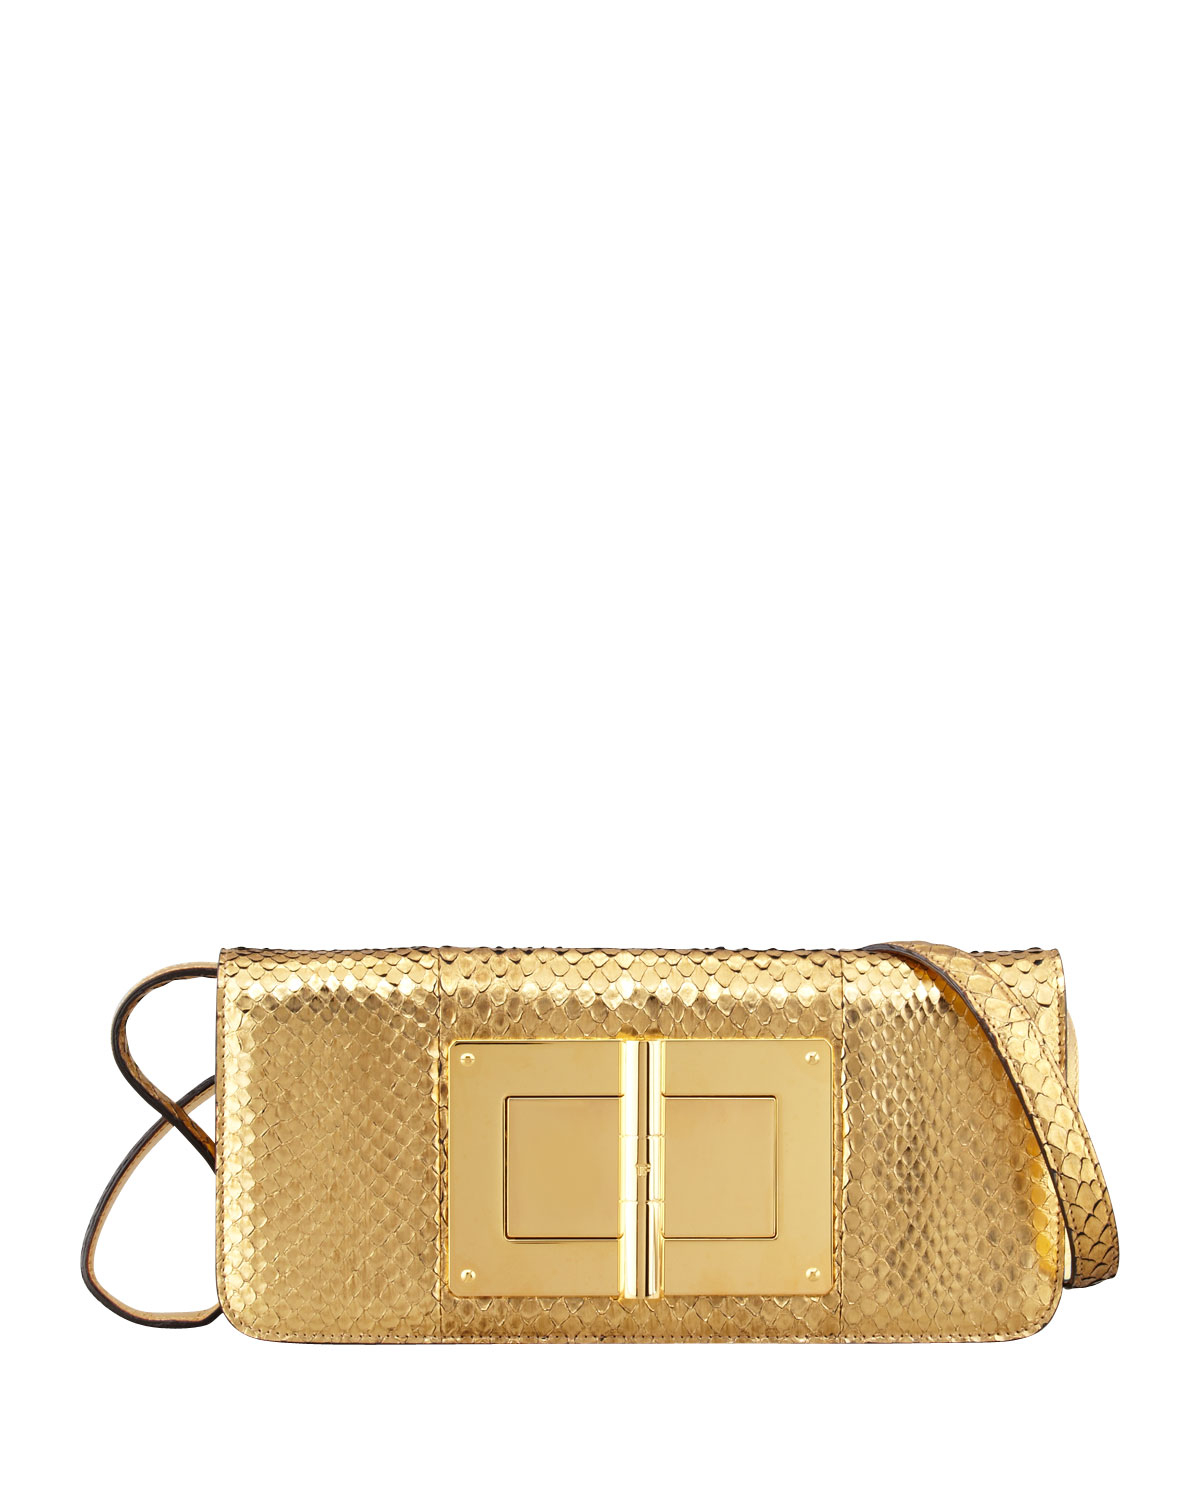 373a27c5a0e6 Lyst - Tom Ford Natalia East-West Python Shoulder Bag in Metallic